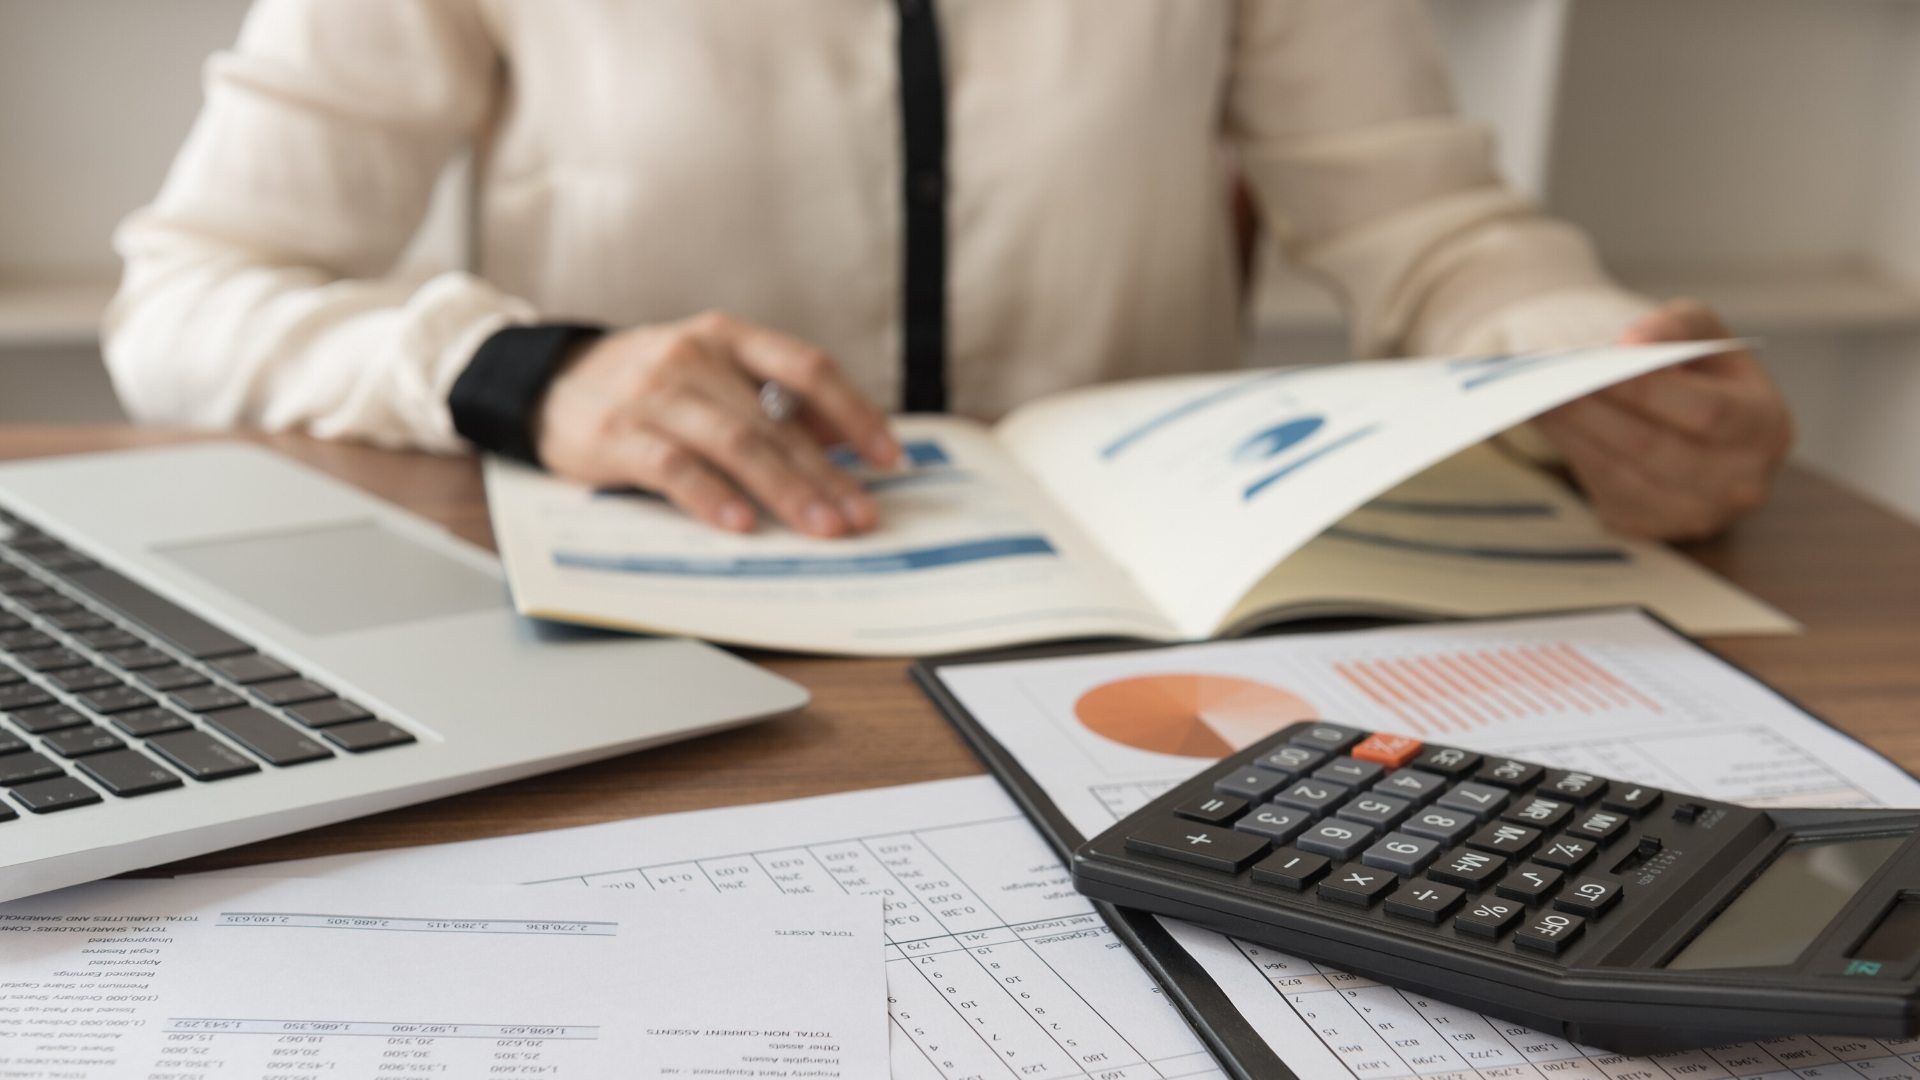 6 Reasons Hiring a Bookkeeper has Exponential ROI